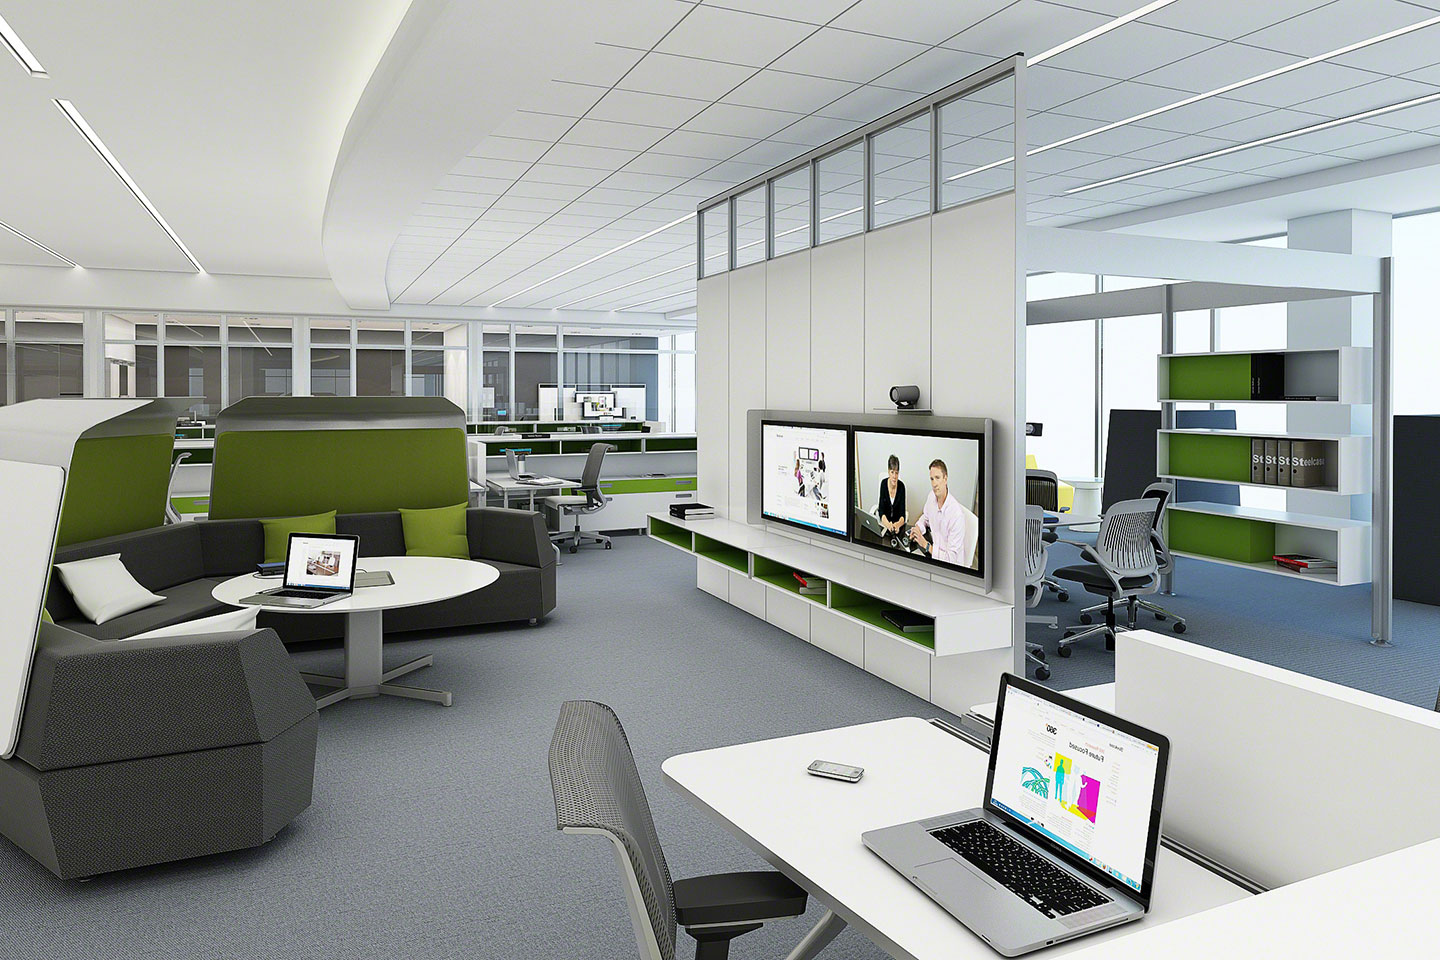 Simple office layout fixes to strengthen office for Office space planner online